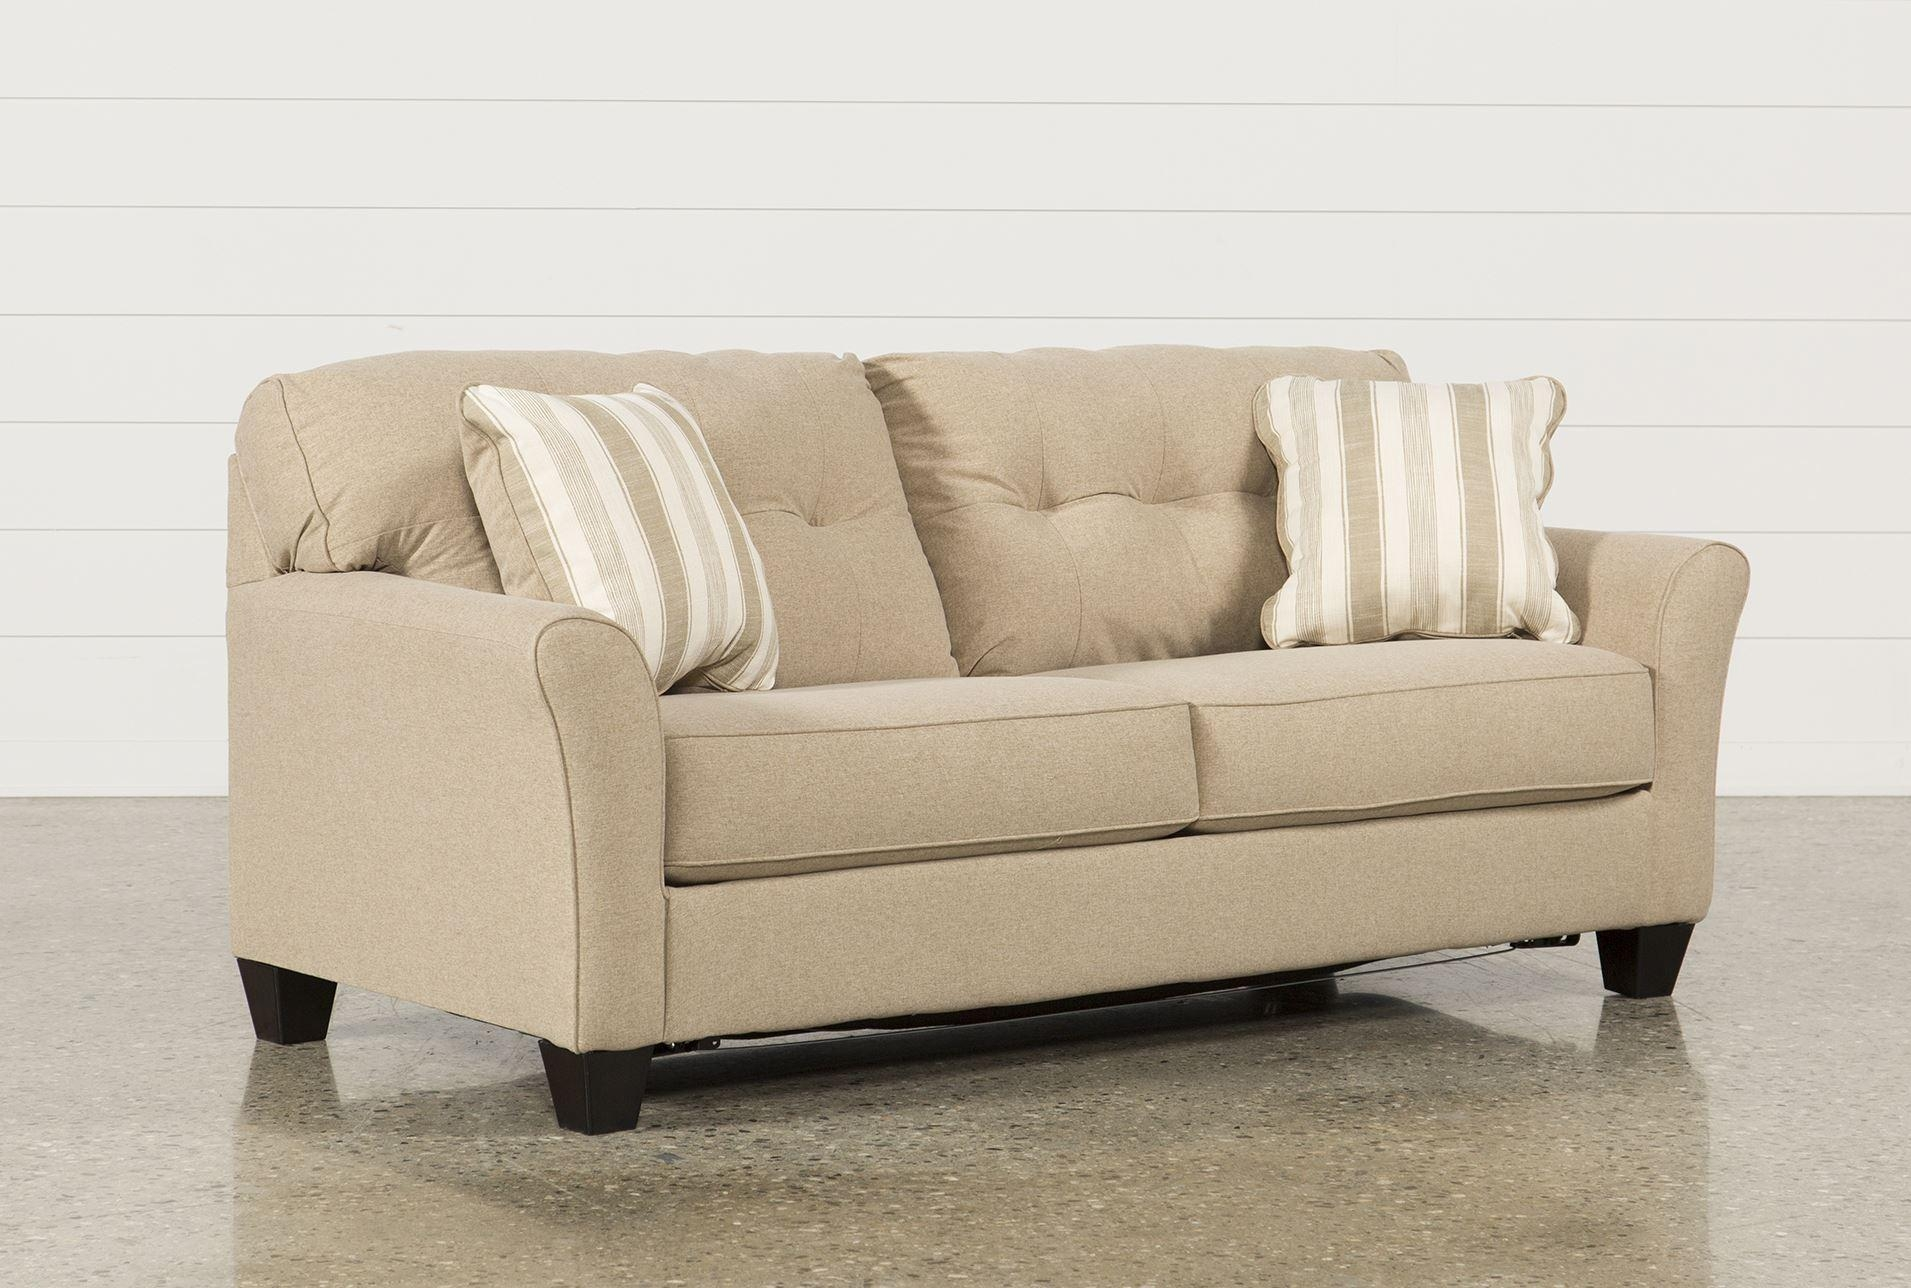 Elegant Sleeper Sofa Living Spaces 13 For Pier One Sleeper Sofa Inside Pier One Sleeper Sofas (View 6 of 20)